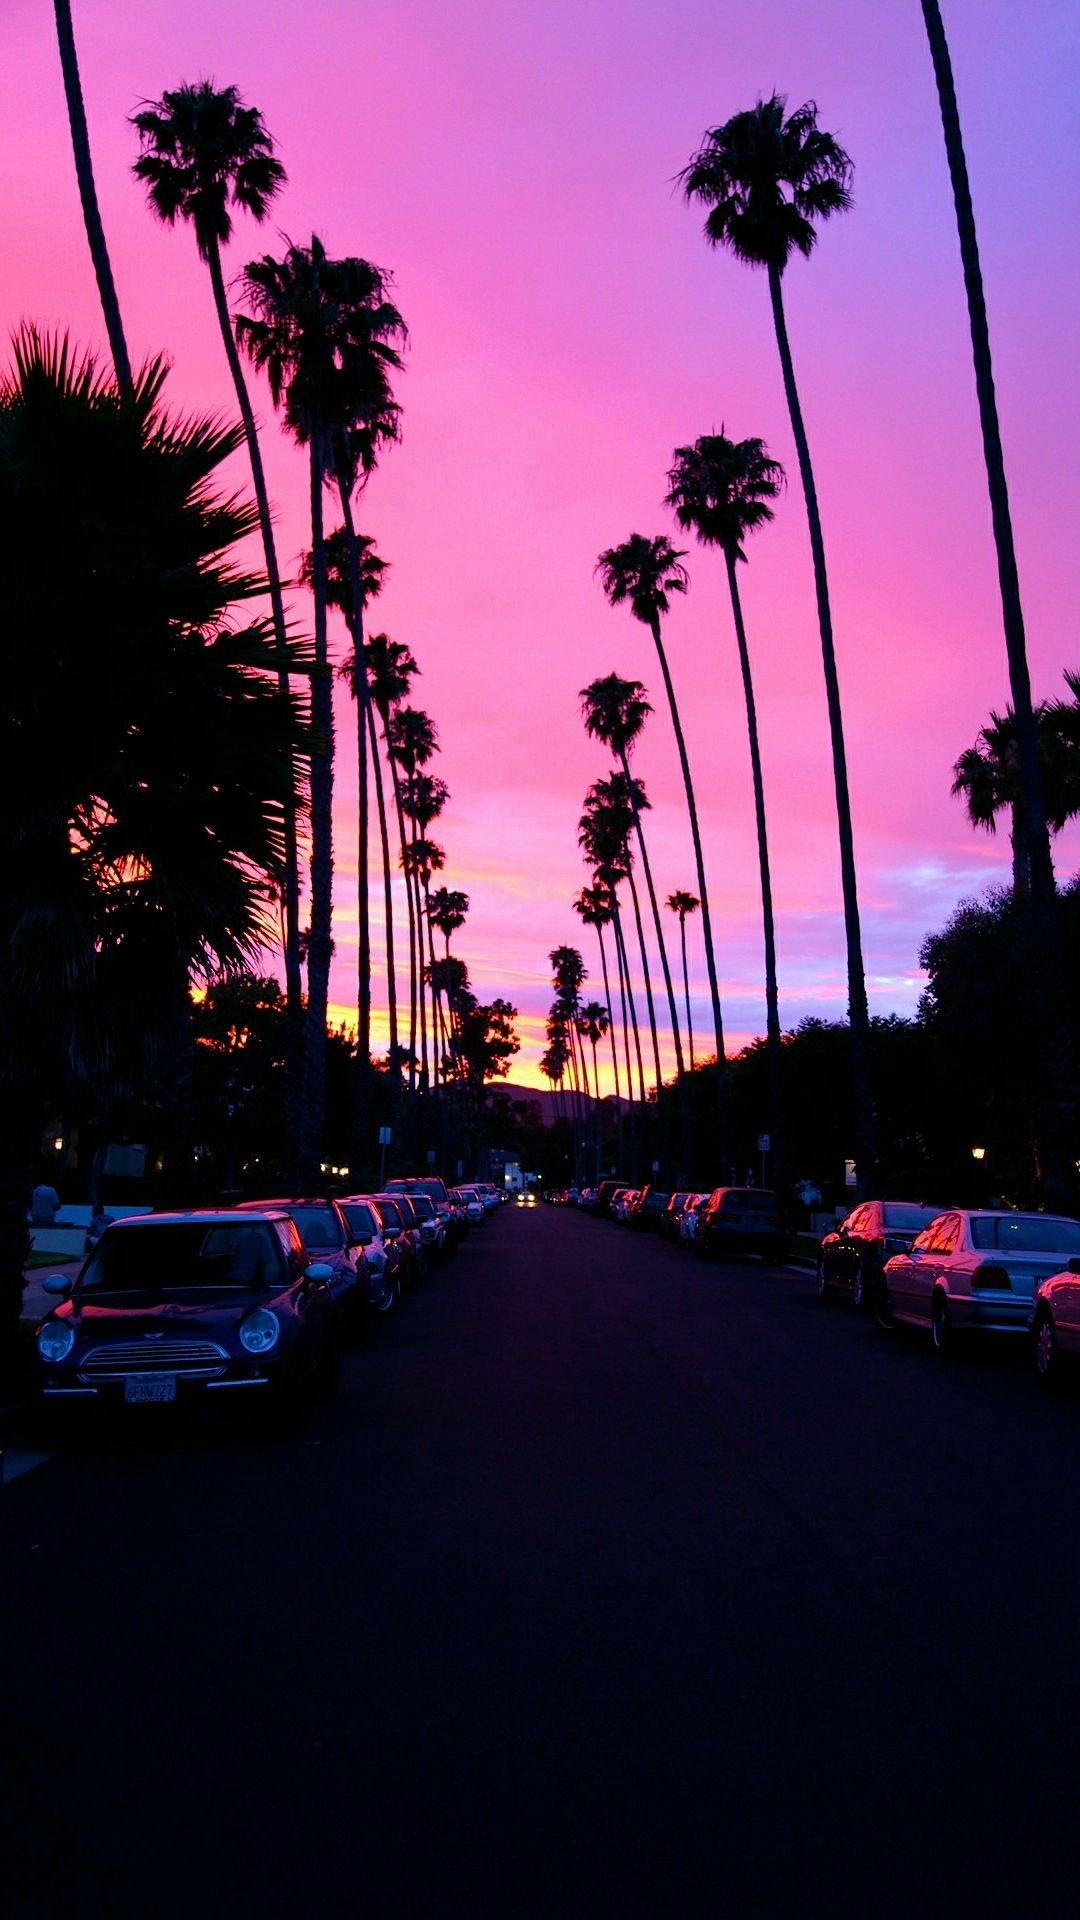 los angeles wallpapers for iphone 7, iphone 7 plus, iphone 6 plus